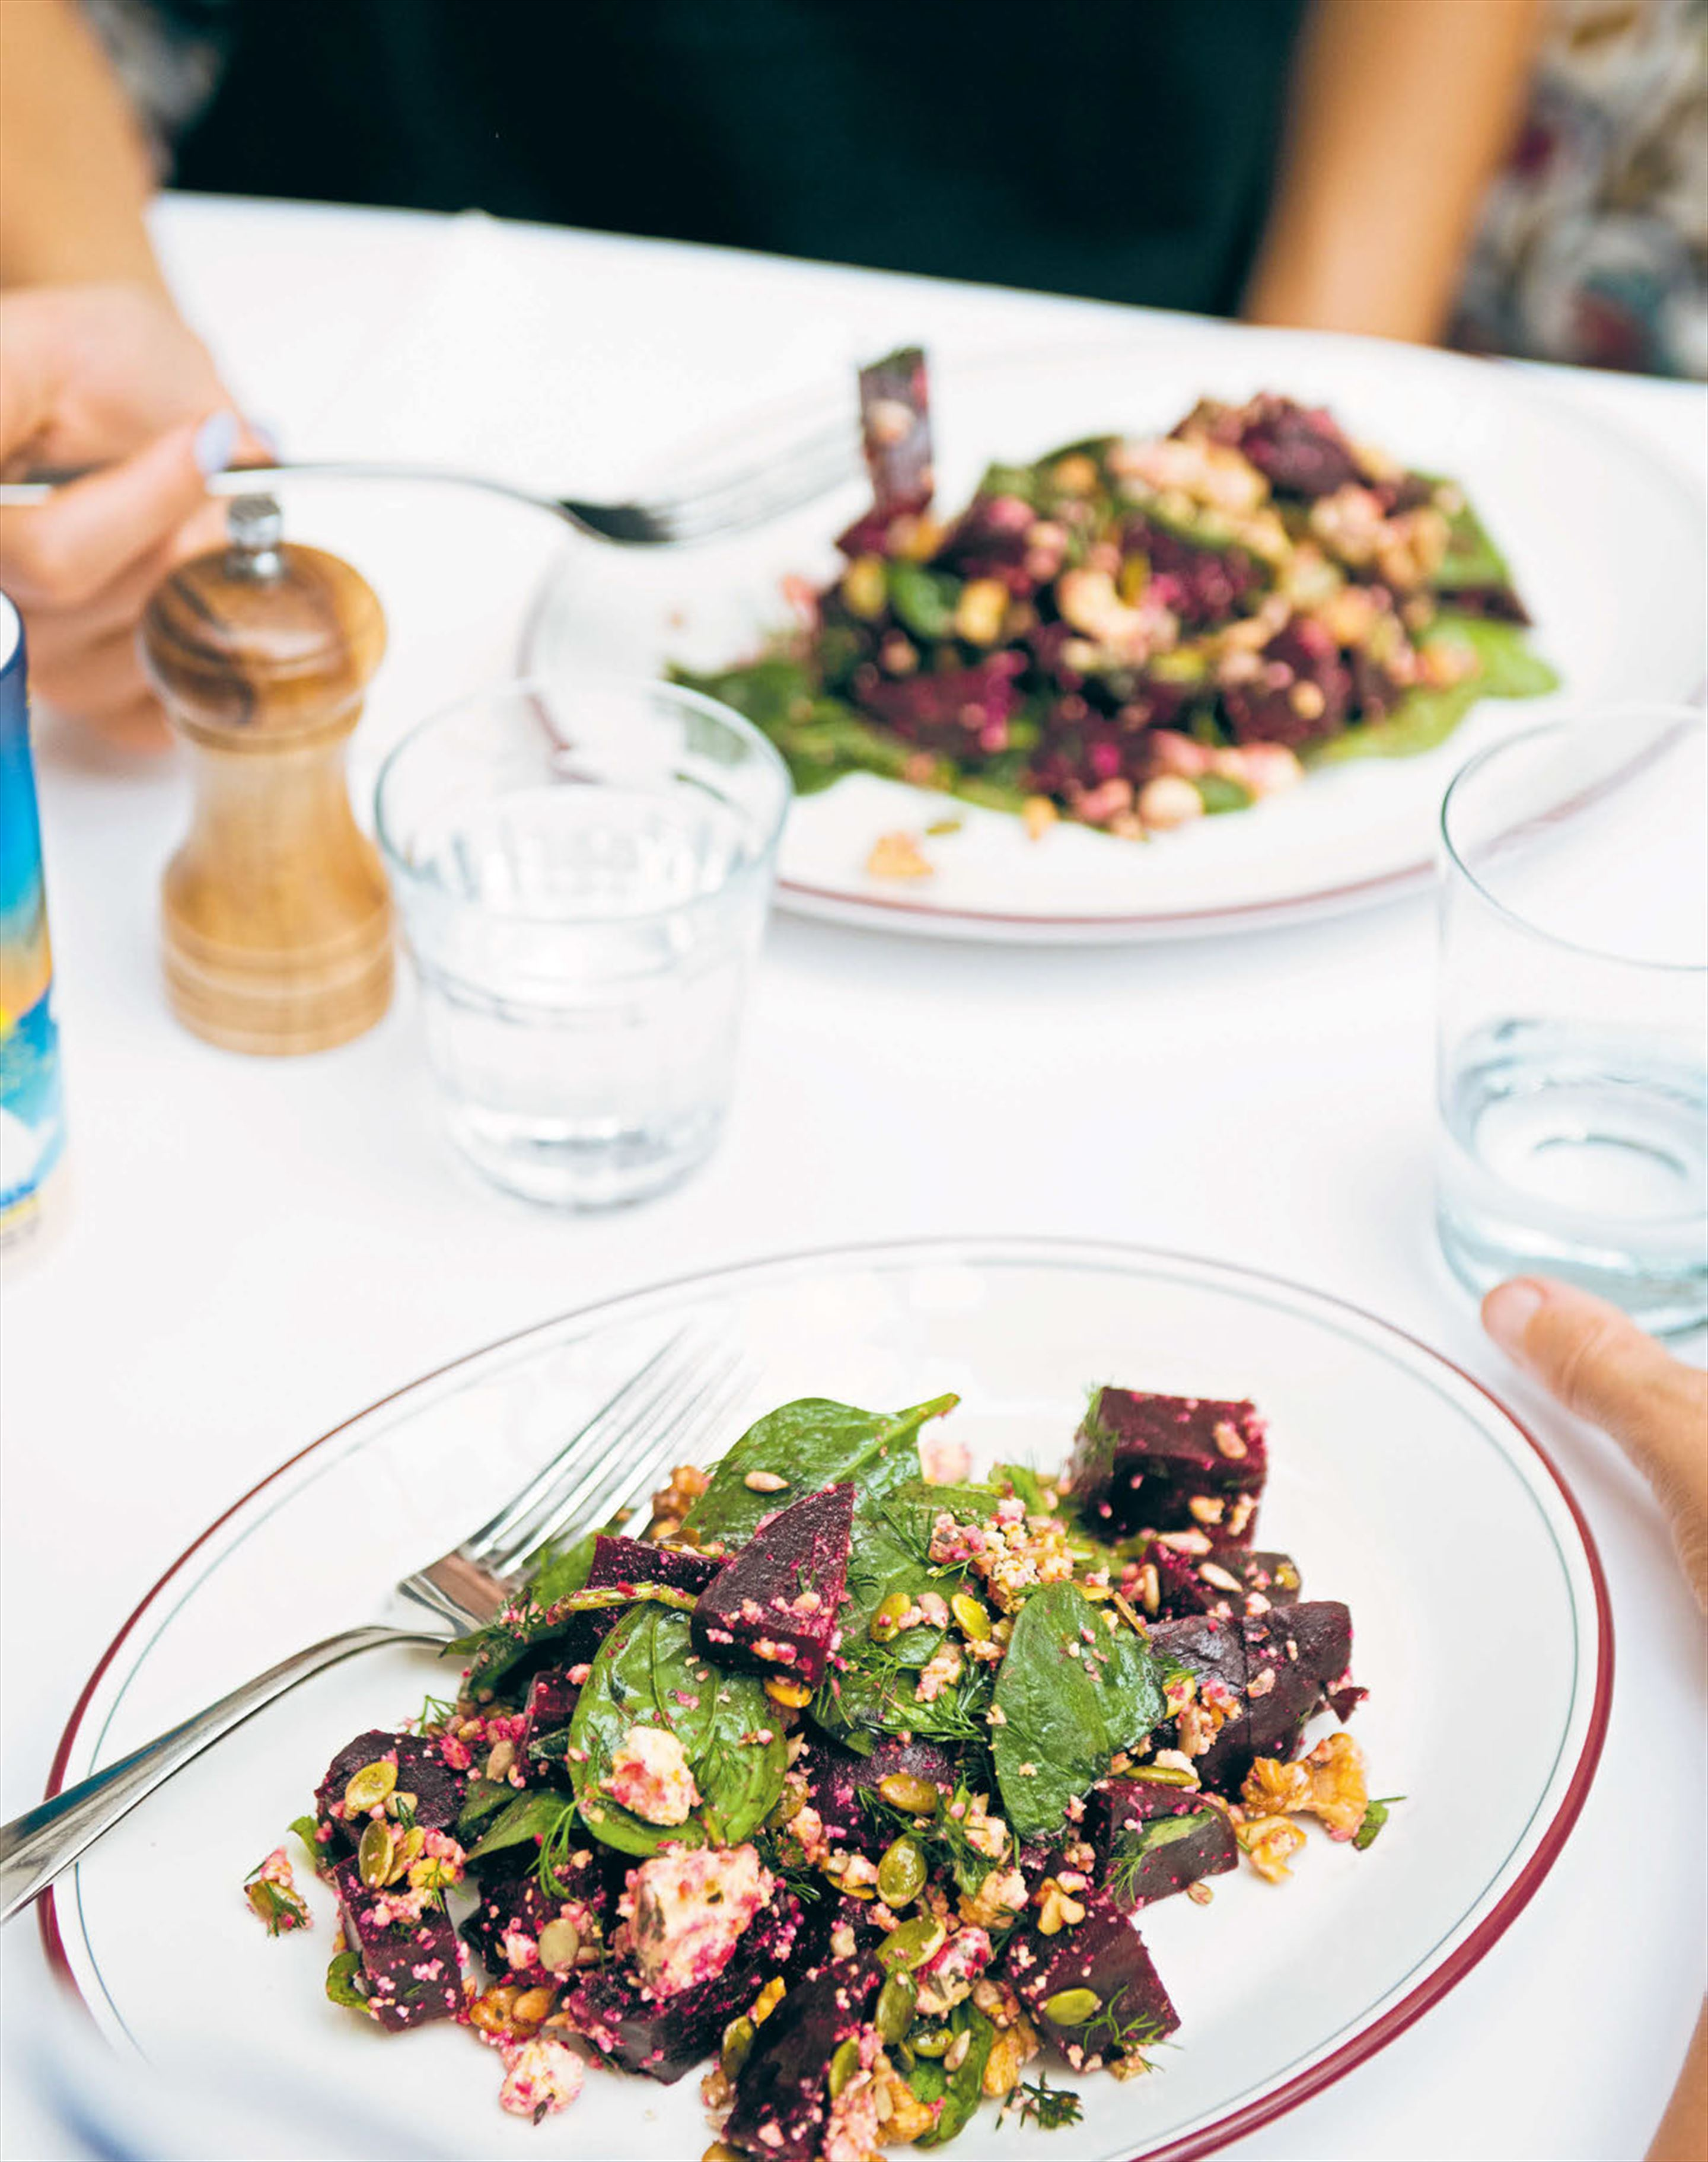 Pickled beetroot salad with walnuts, hazelnuts & shanklish